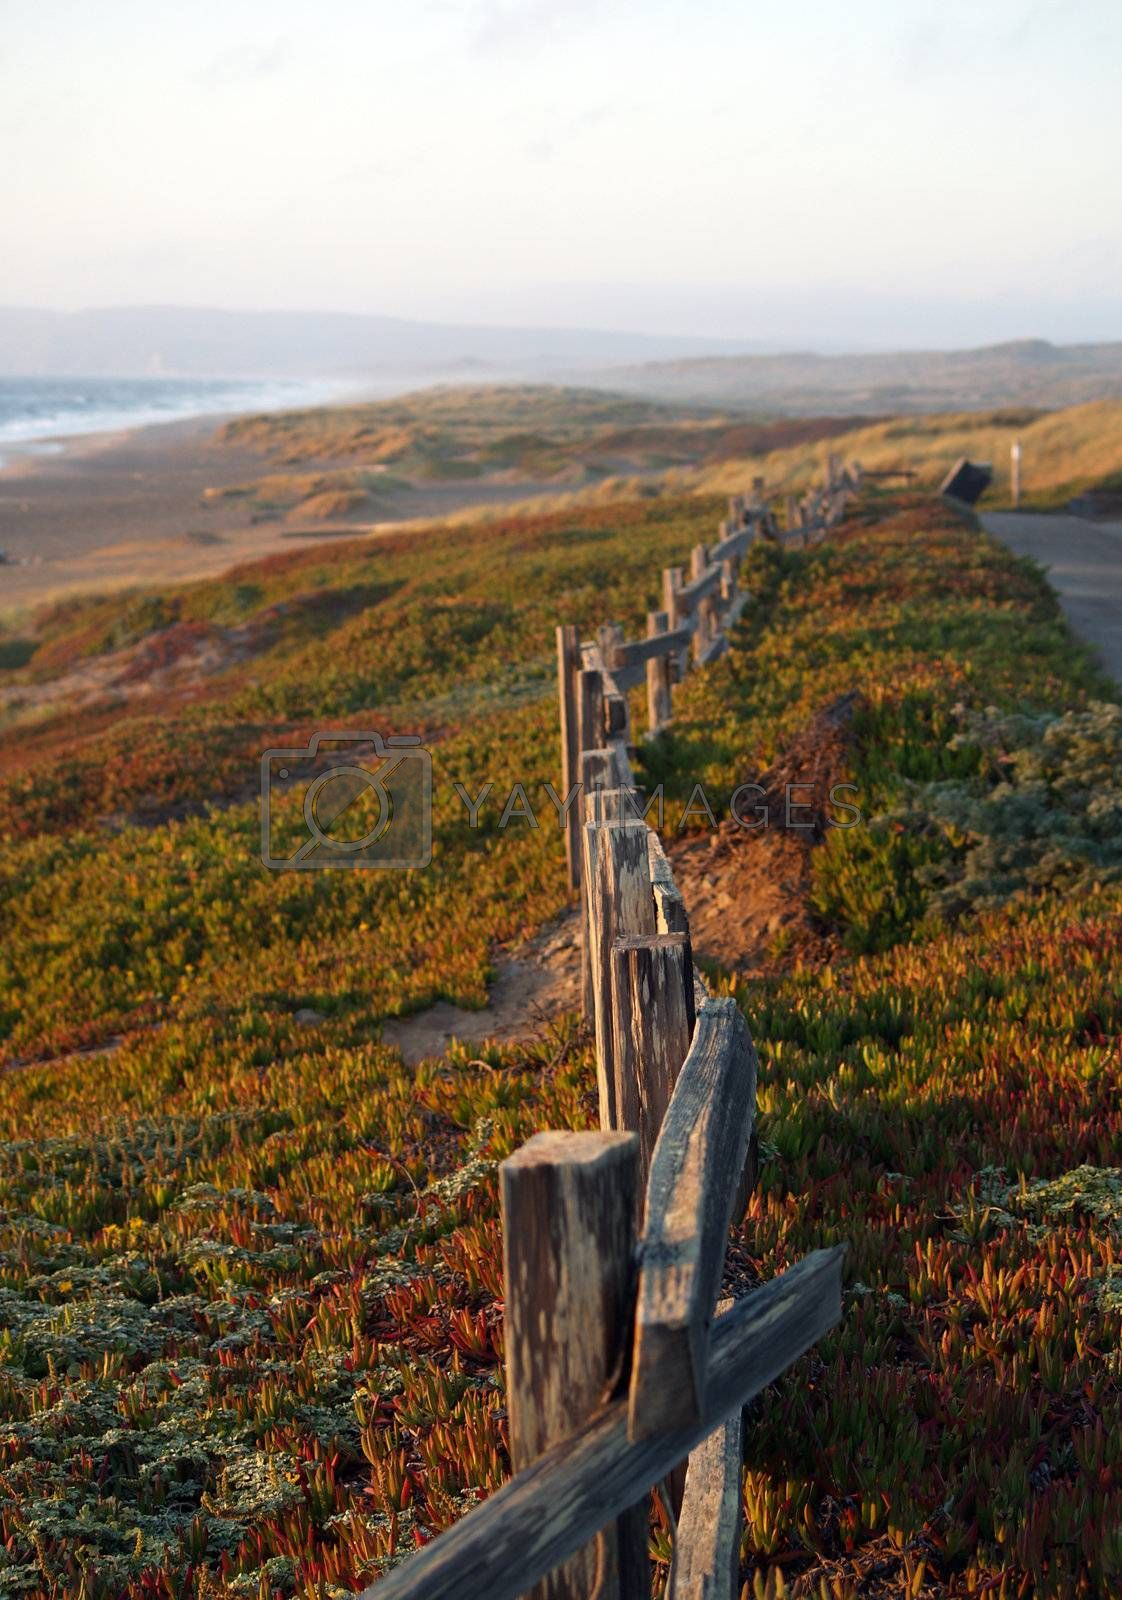 ice plant with wooden fence at beach